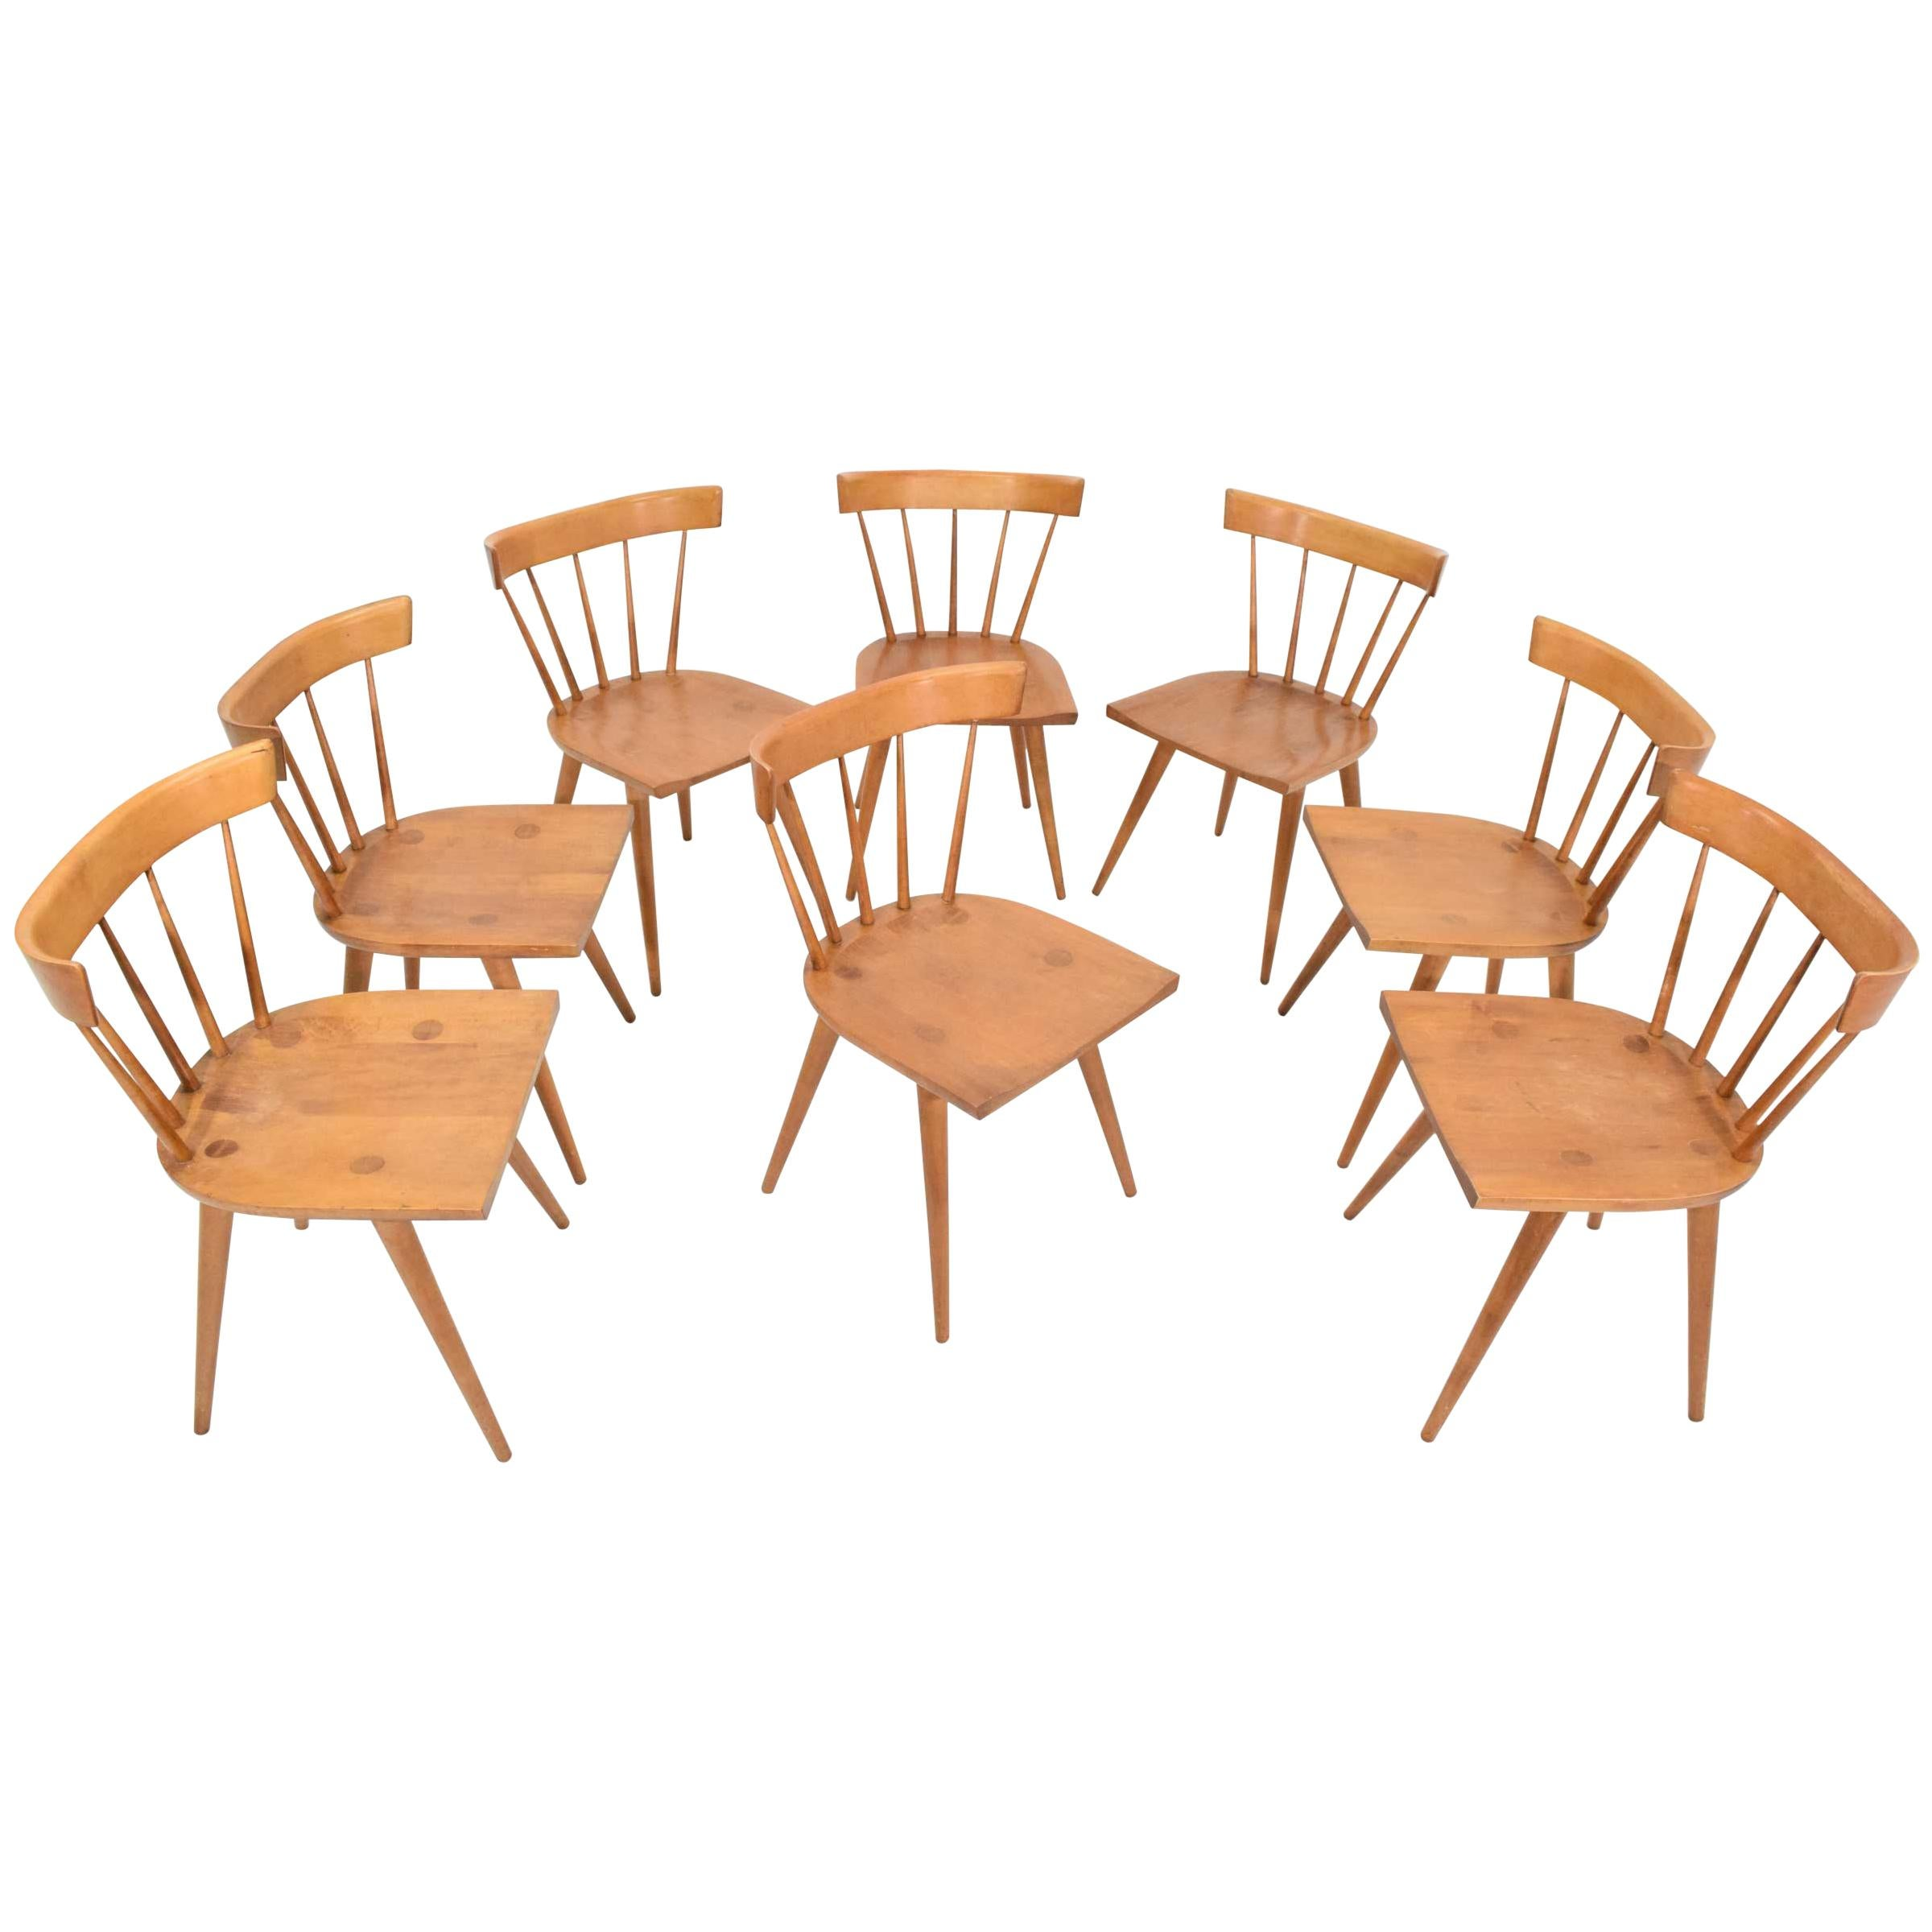 Paul McCobb Planner Group Dining Chairs, Set of Eight, 1950s